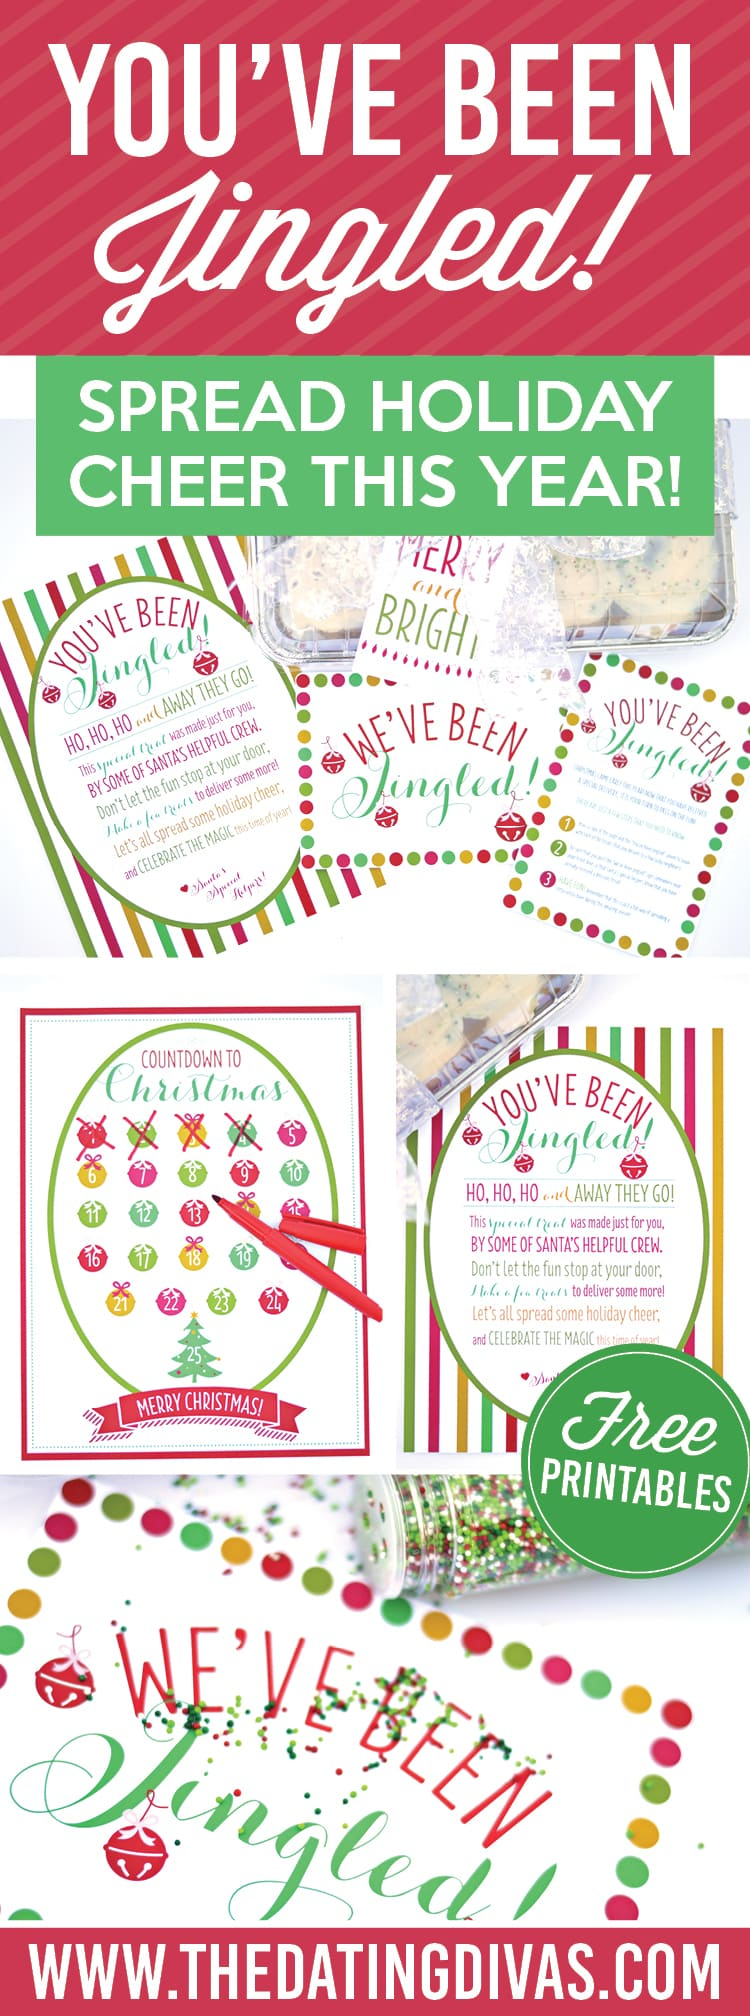 picture relating to You've Been Elfed Printable known as Youve Been Jingled! - A Xmas Lifestyle!